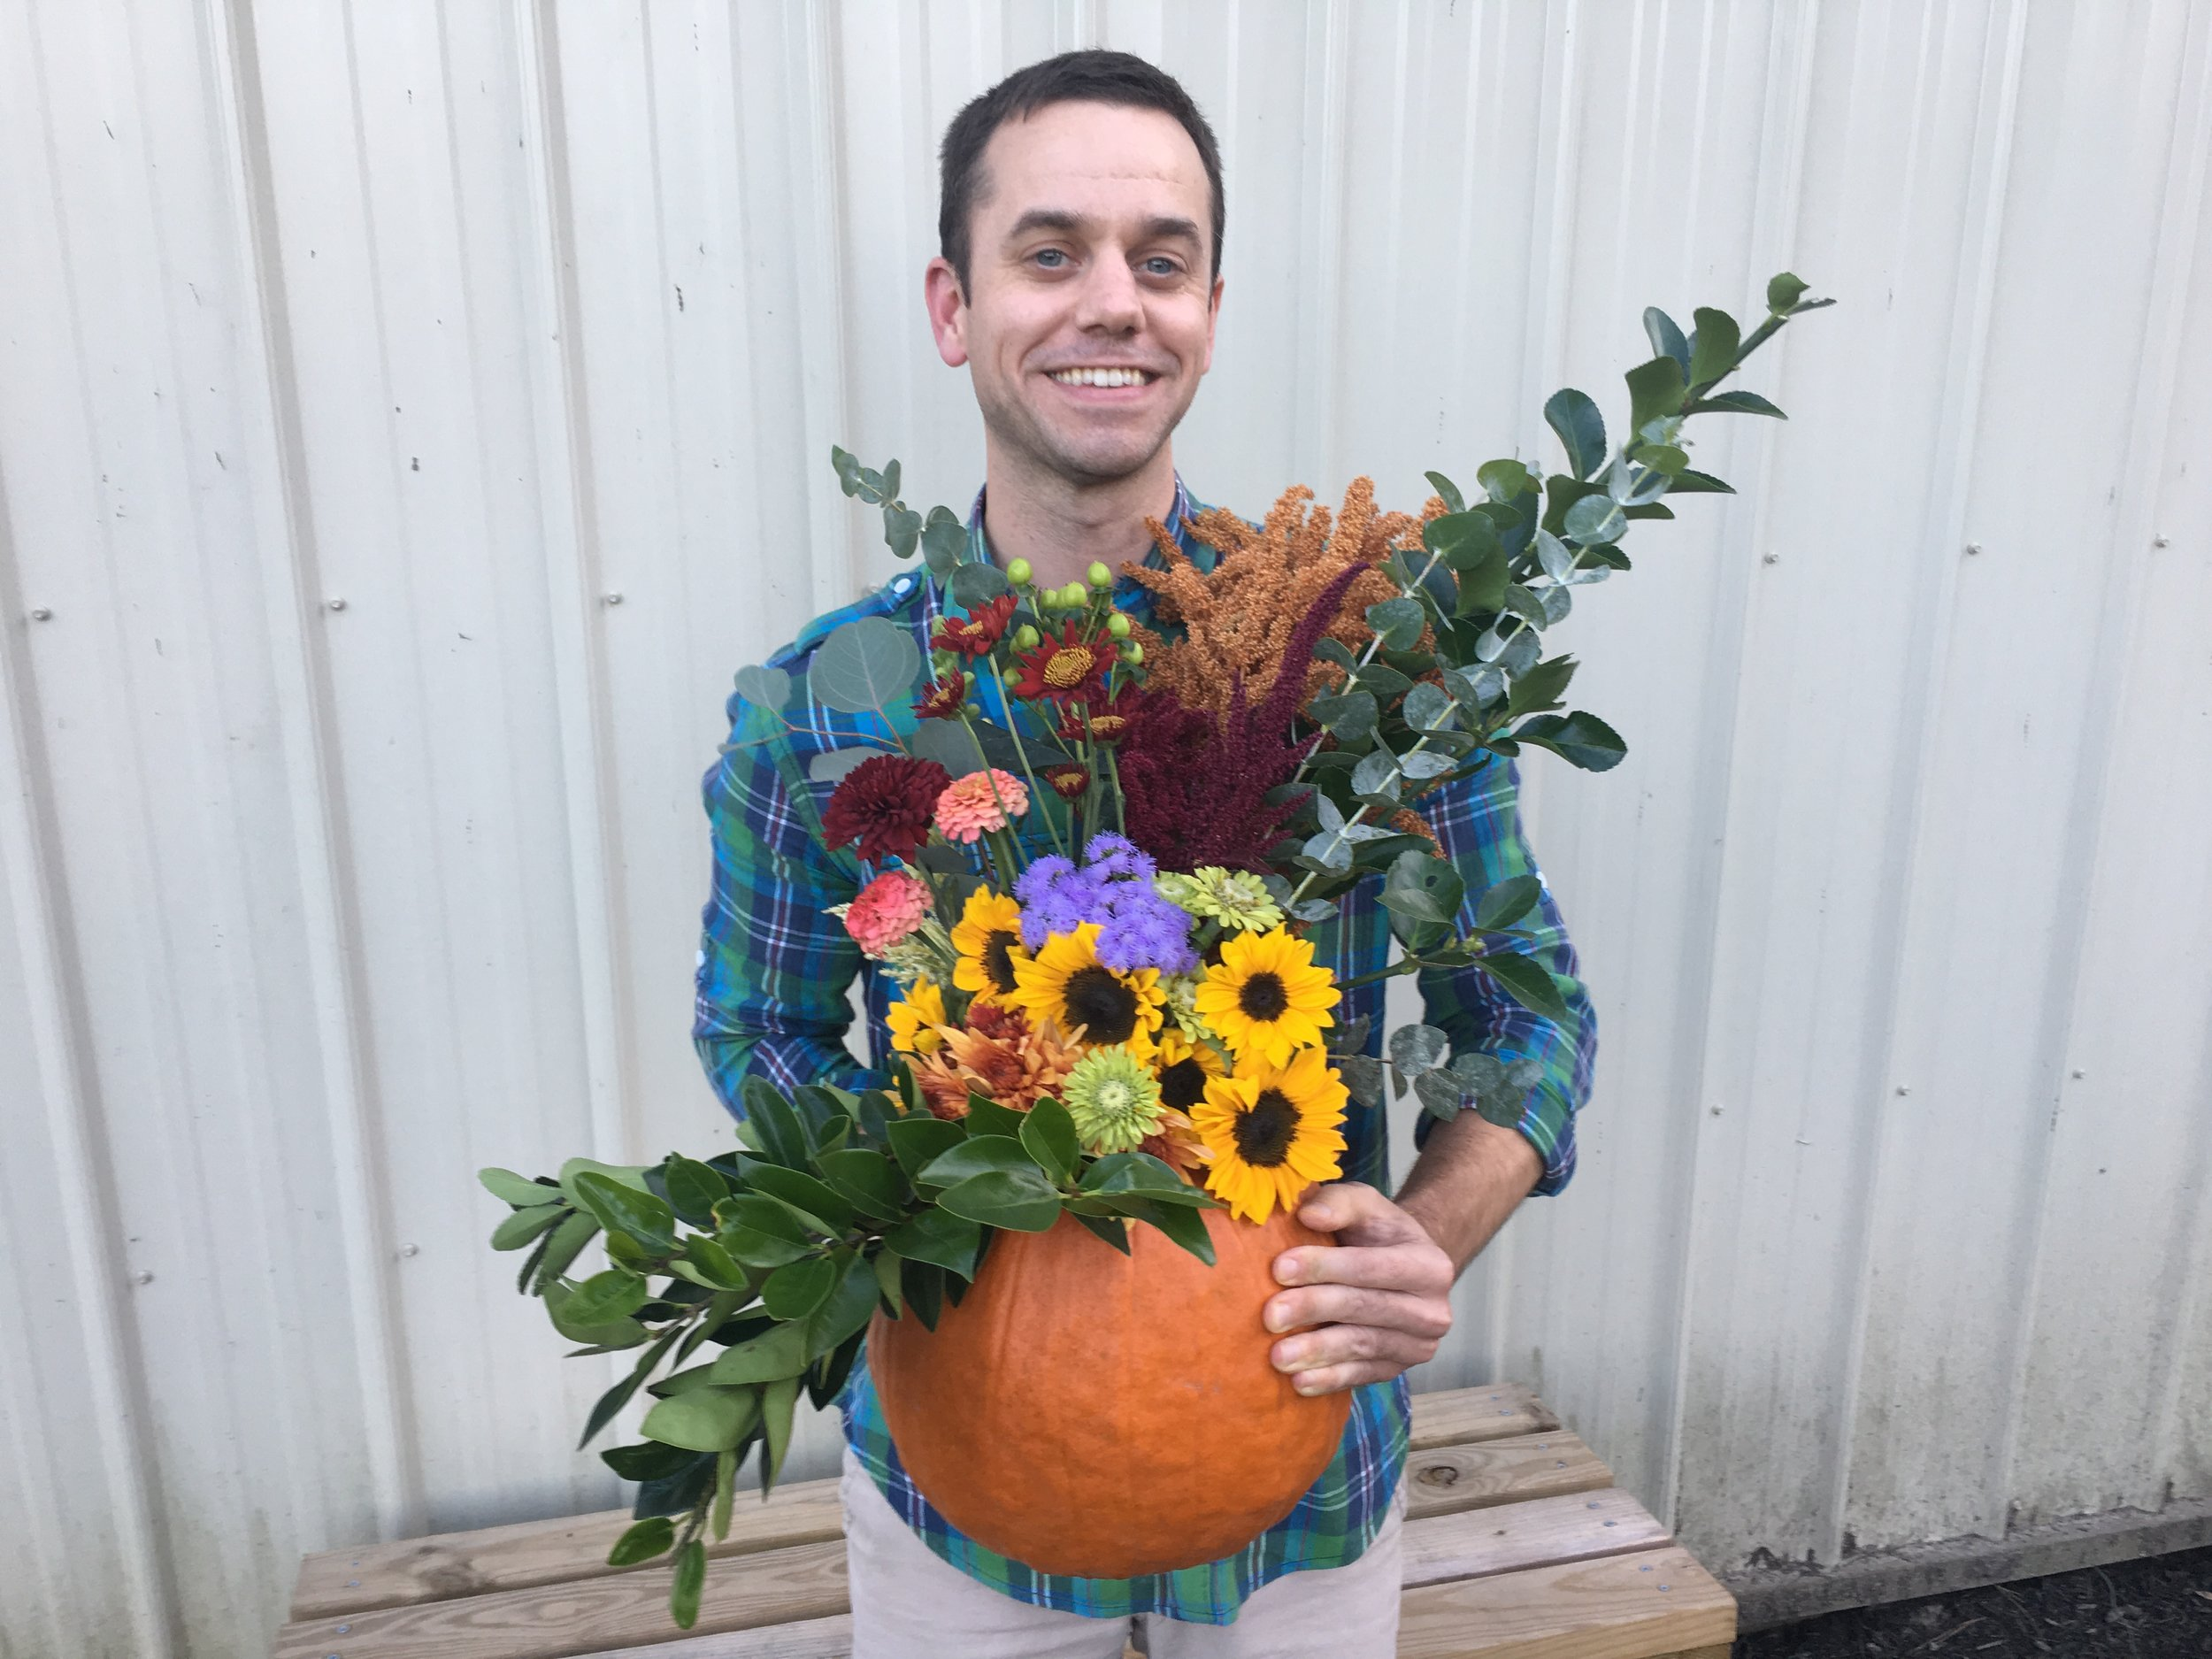 Not too bad for my first pumpkin bouquet.